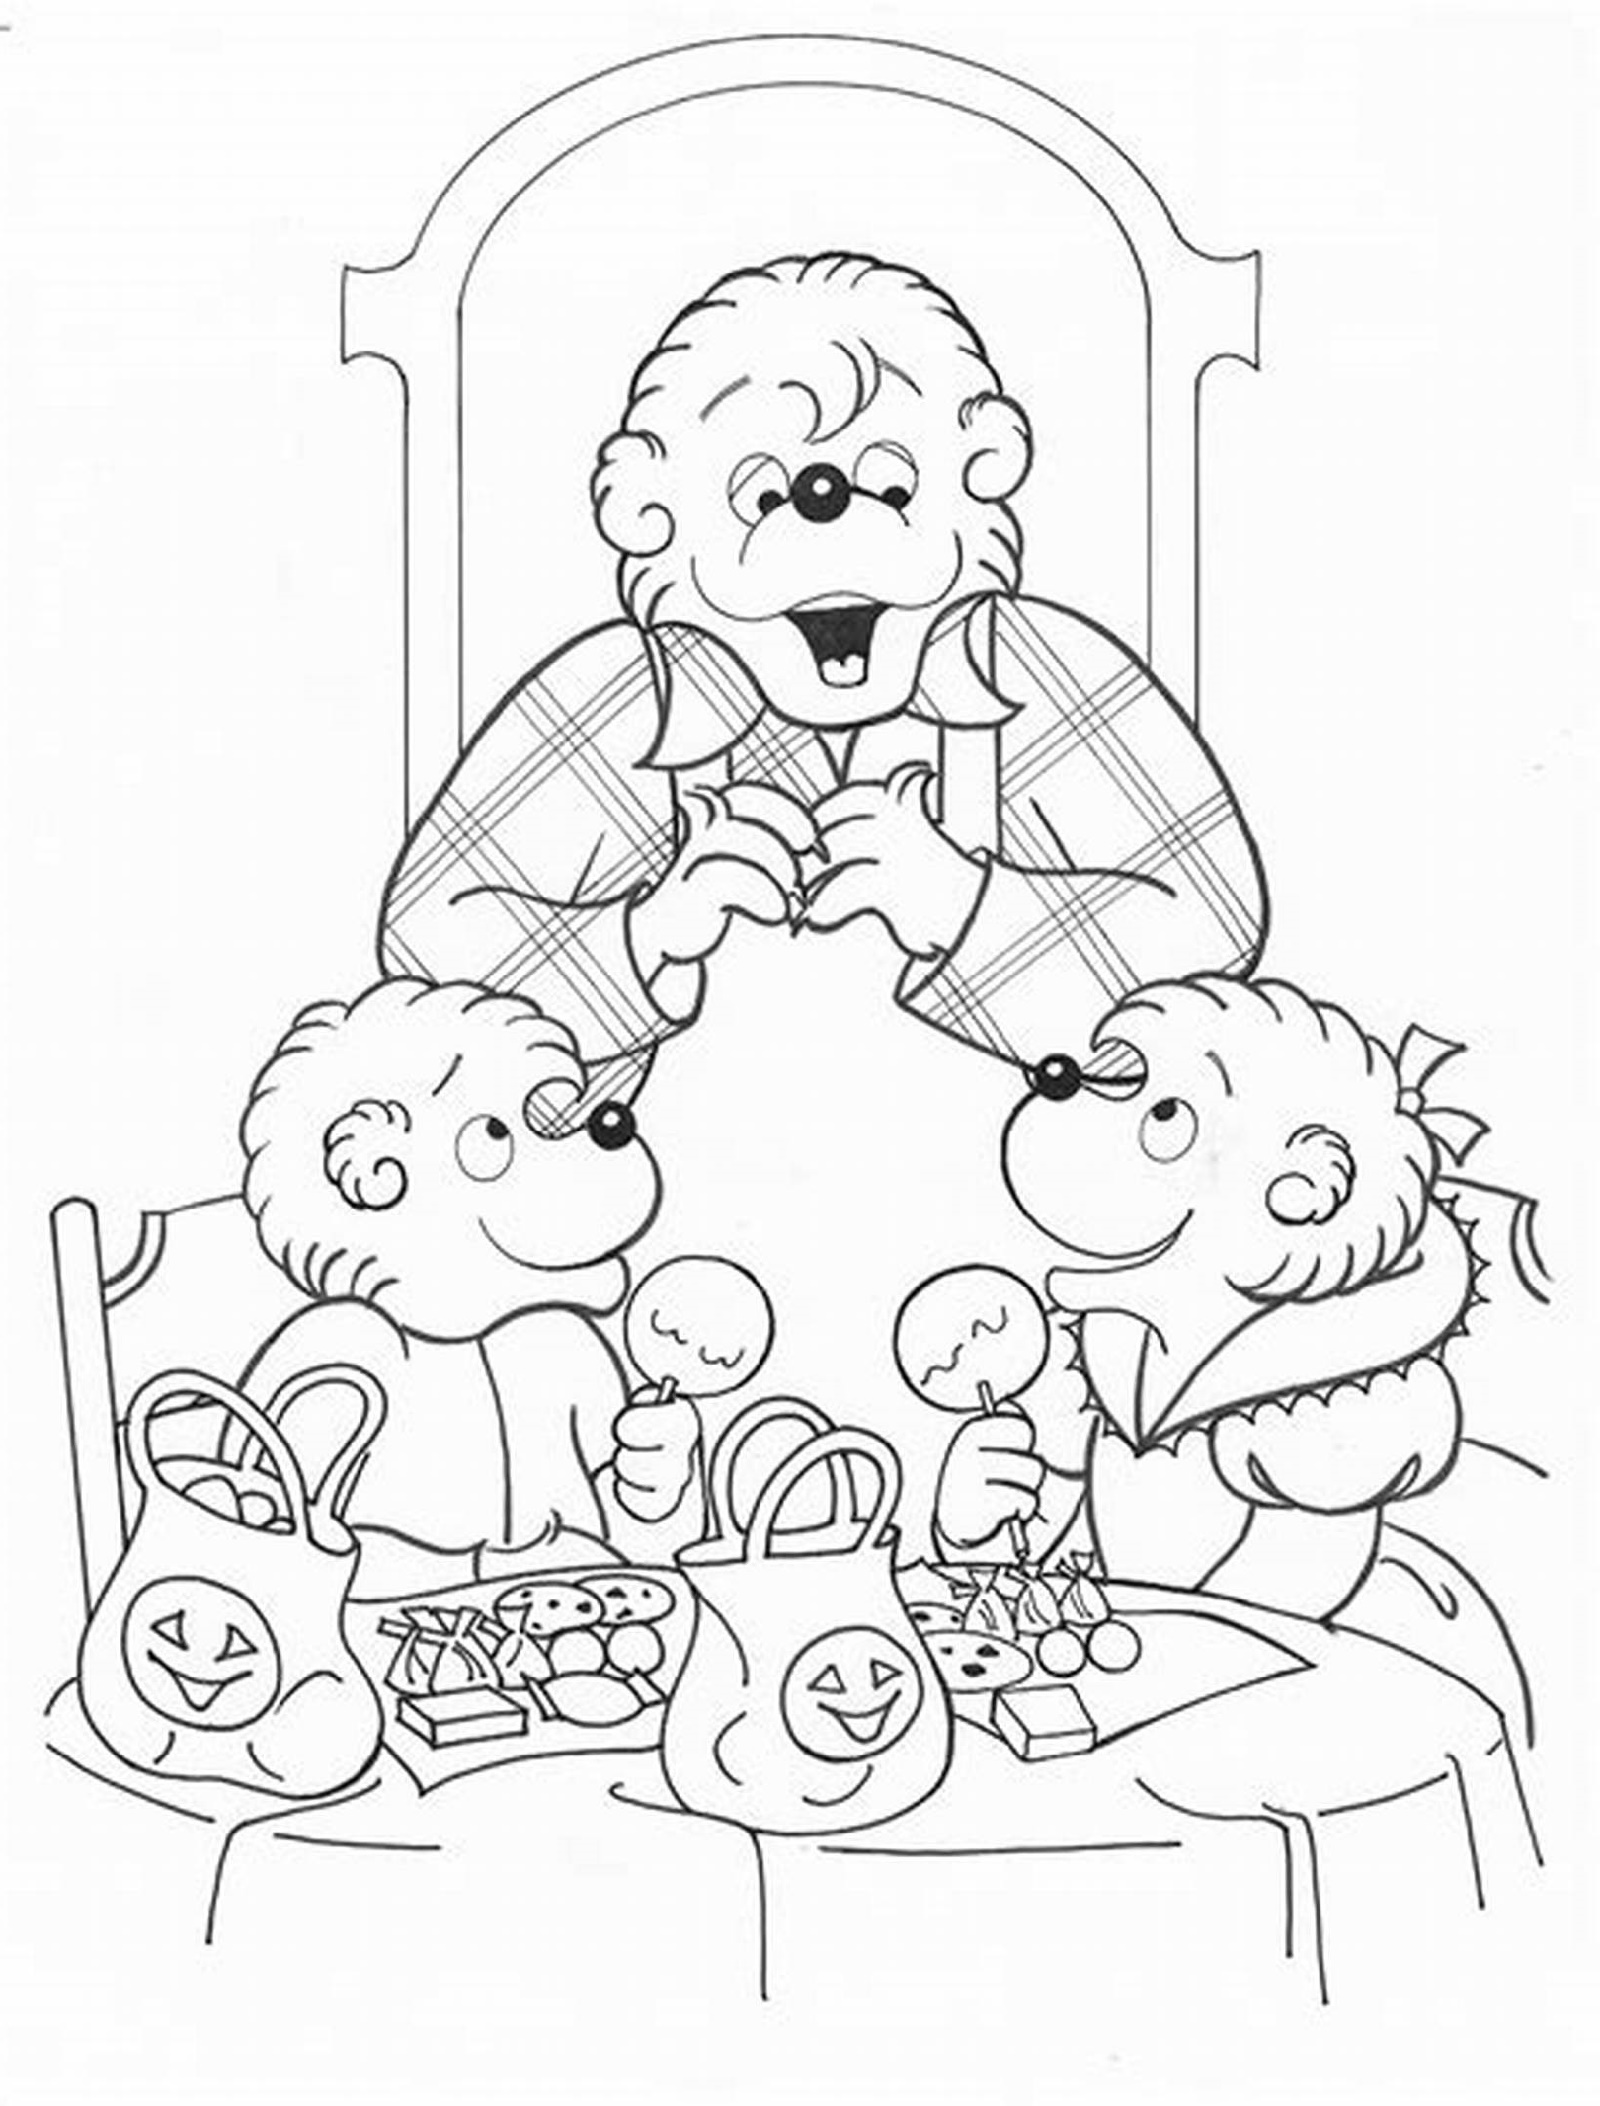 Berenstain Bears Coloring Pages Brother and Sister